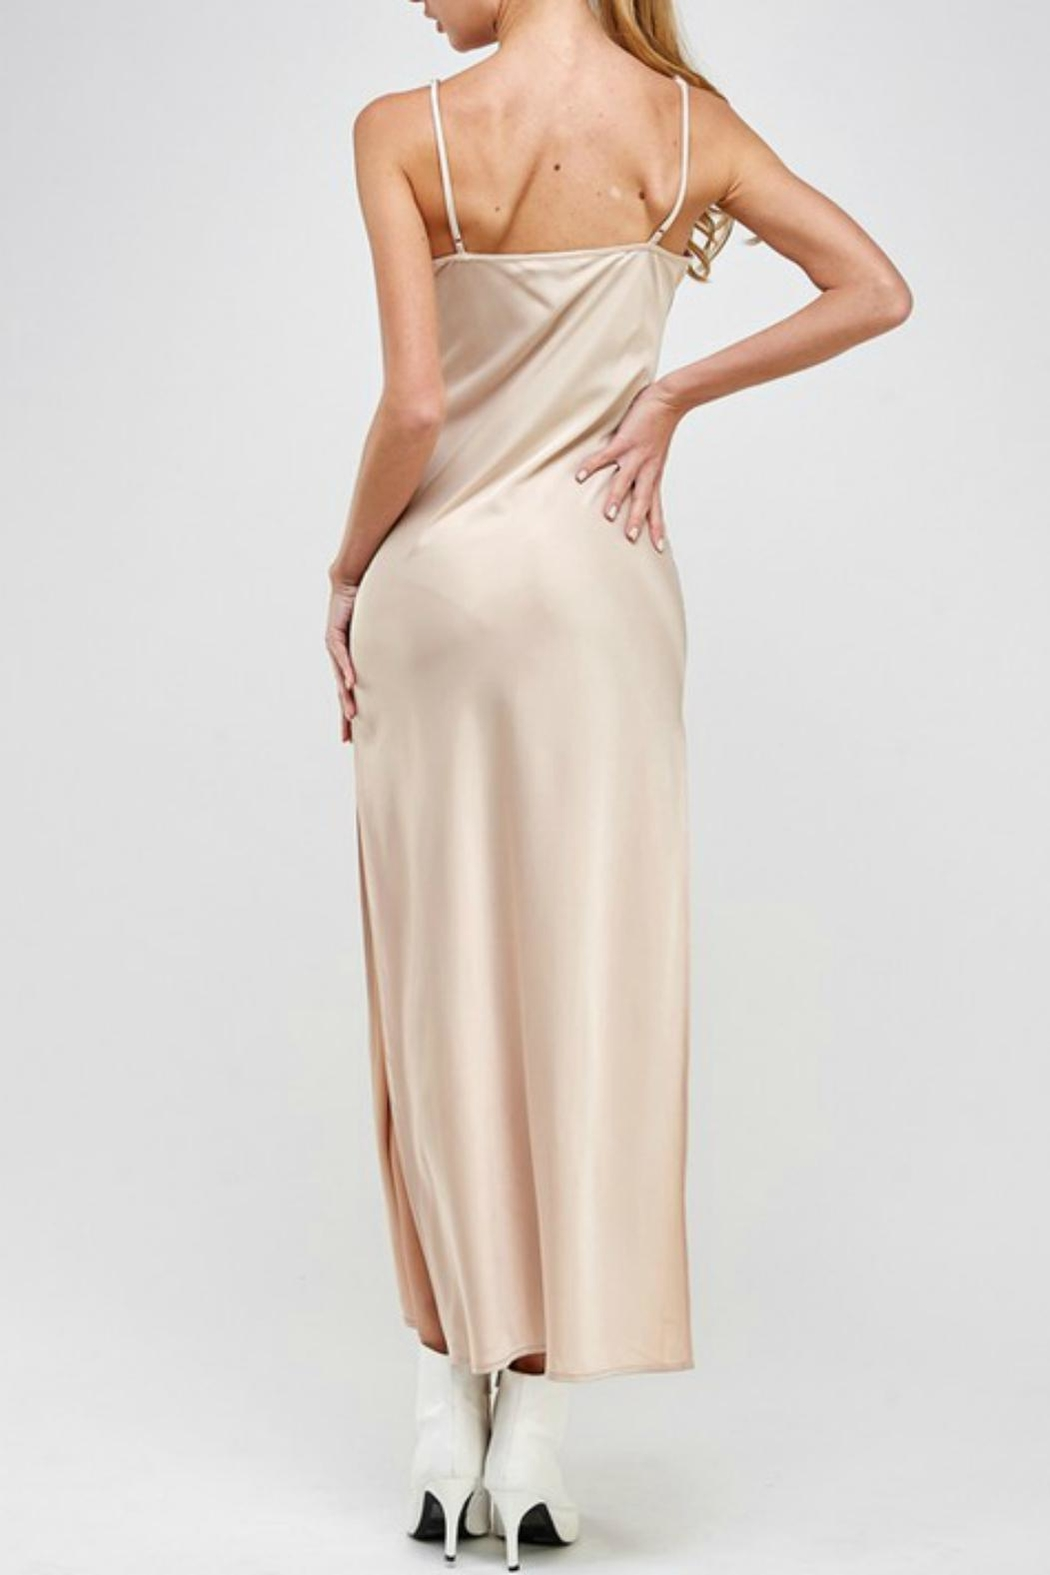 Pretty Little Things Satin Maxi Dress - Side Cropped Image